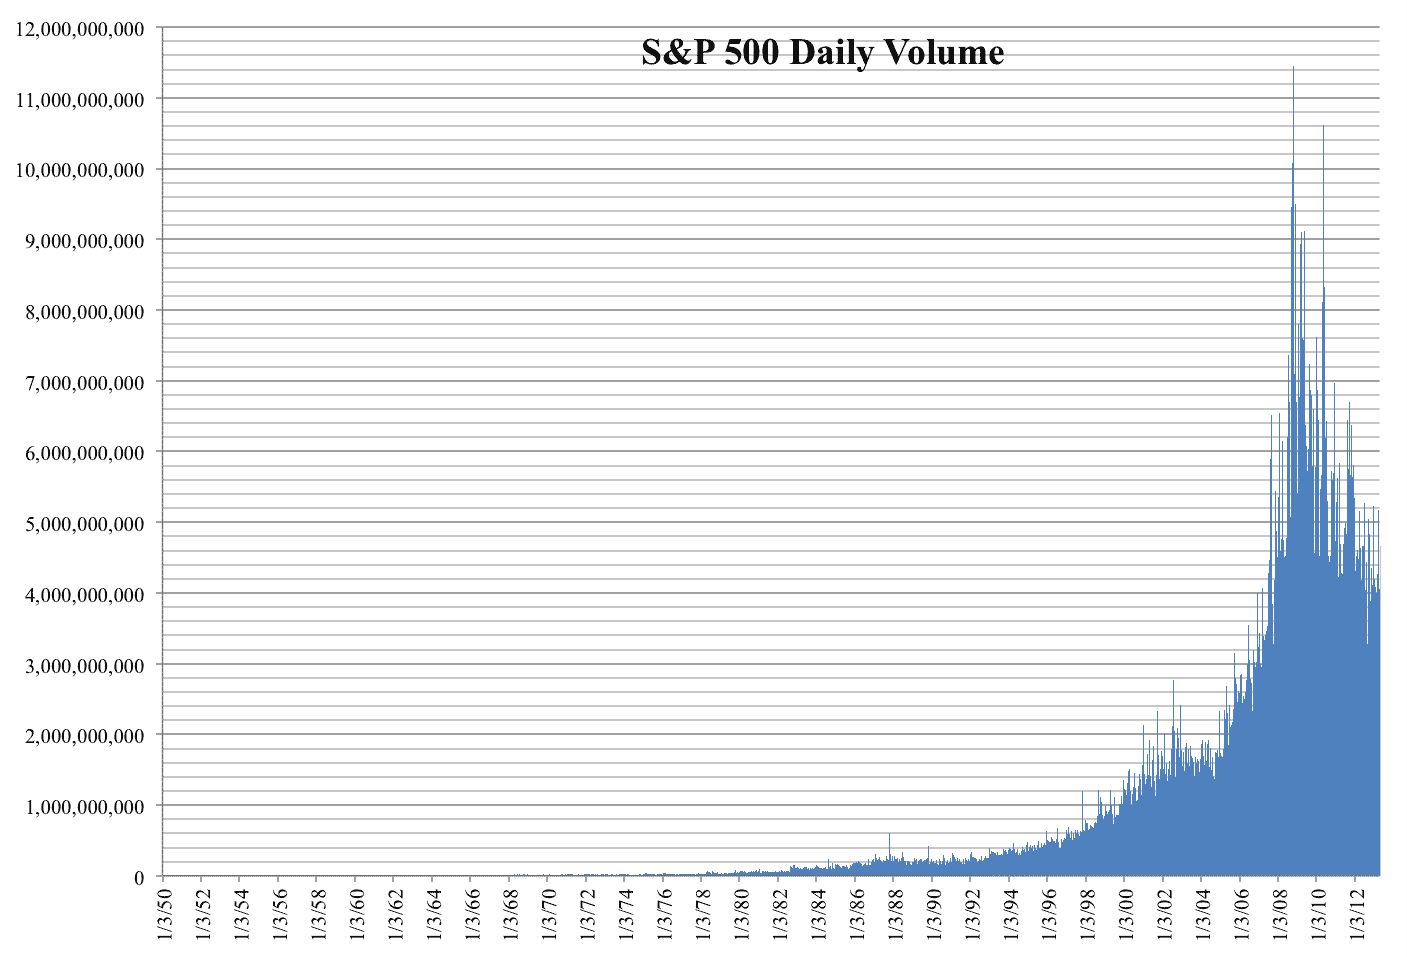 daily volume in the S&P 500 index